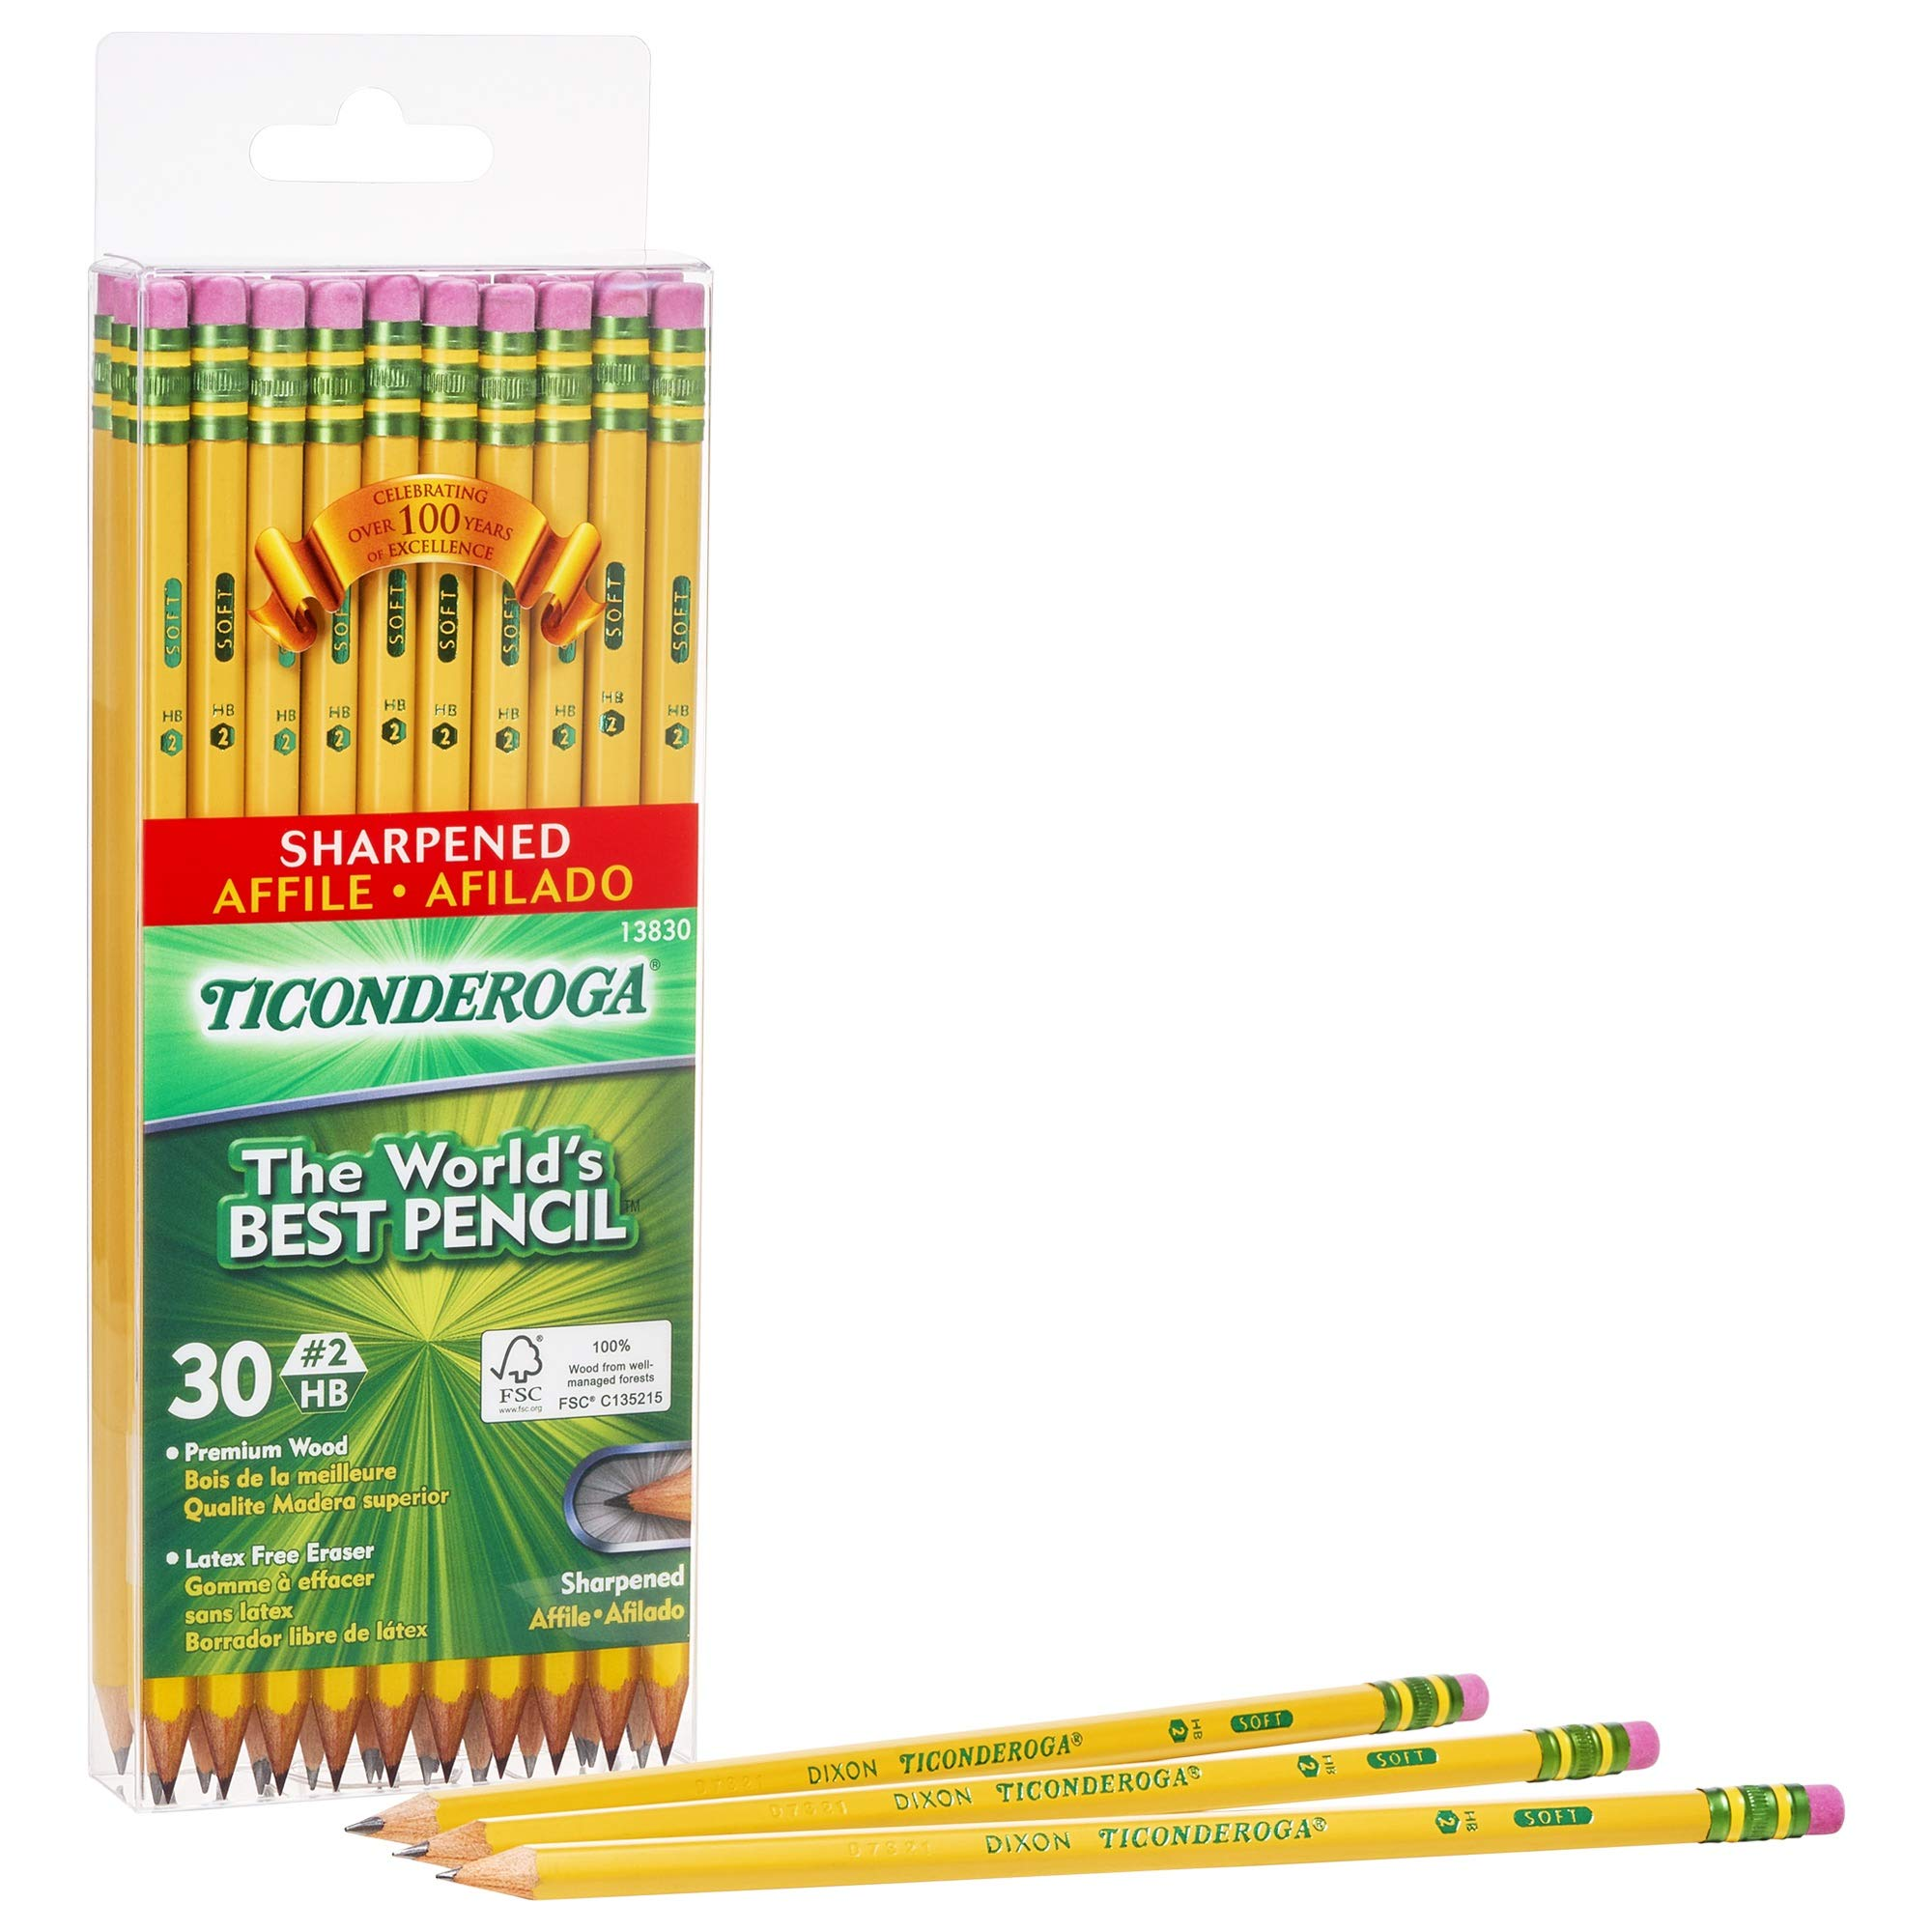 TICONDEROGA Pencils, Wood-Cased #2 HB Soft, Pre-Sharpened with Eraser, Yellow, 6-Pack/ 180 count (13806) by Ticonderoga